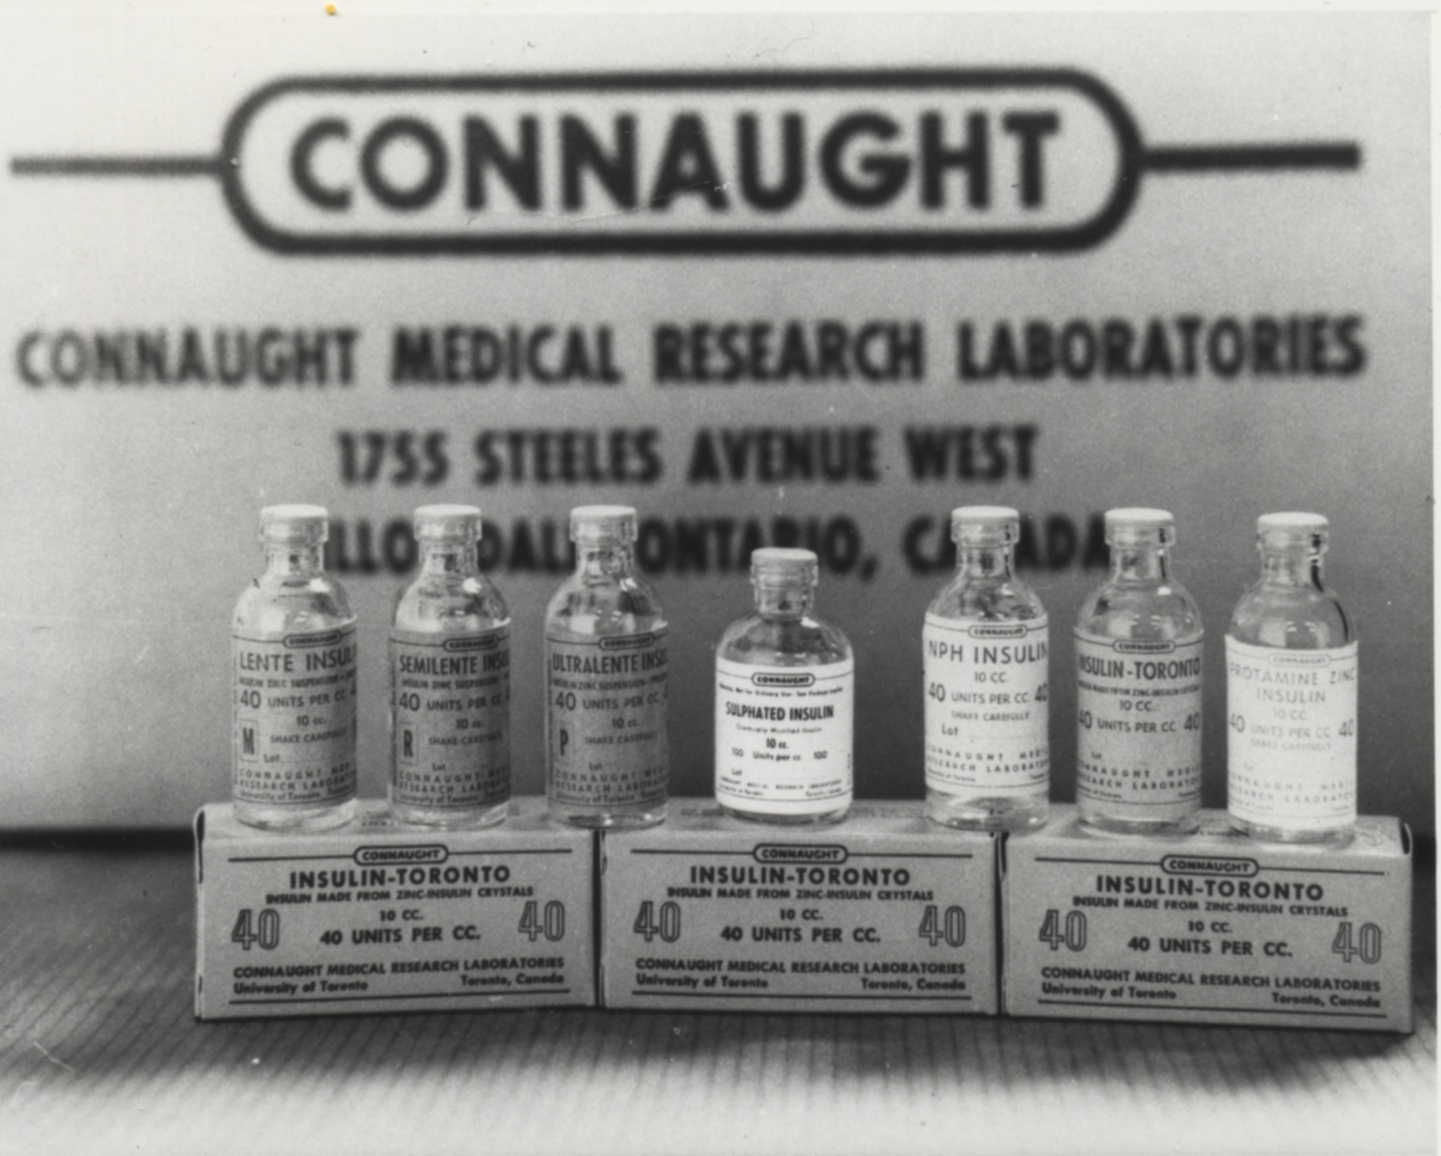 Sulphated Insulin is placed at the centre of Connaught's family of insulin products in this promotional photo from the late 1960s.